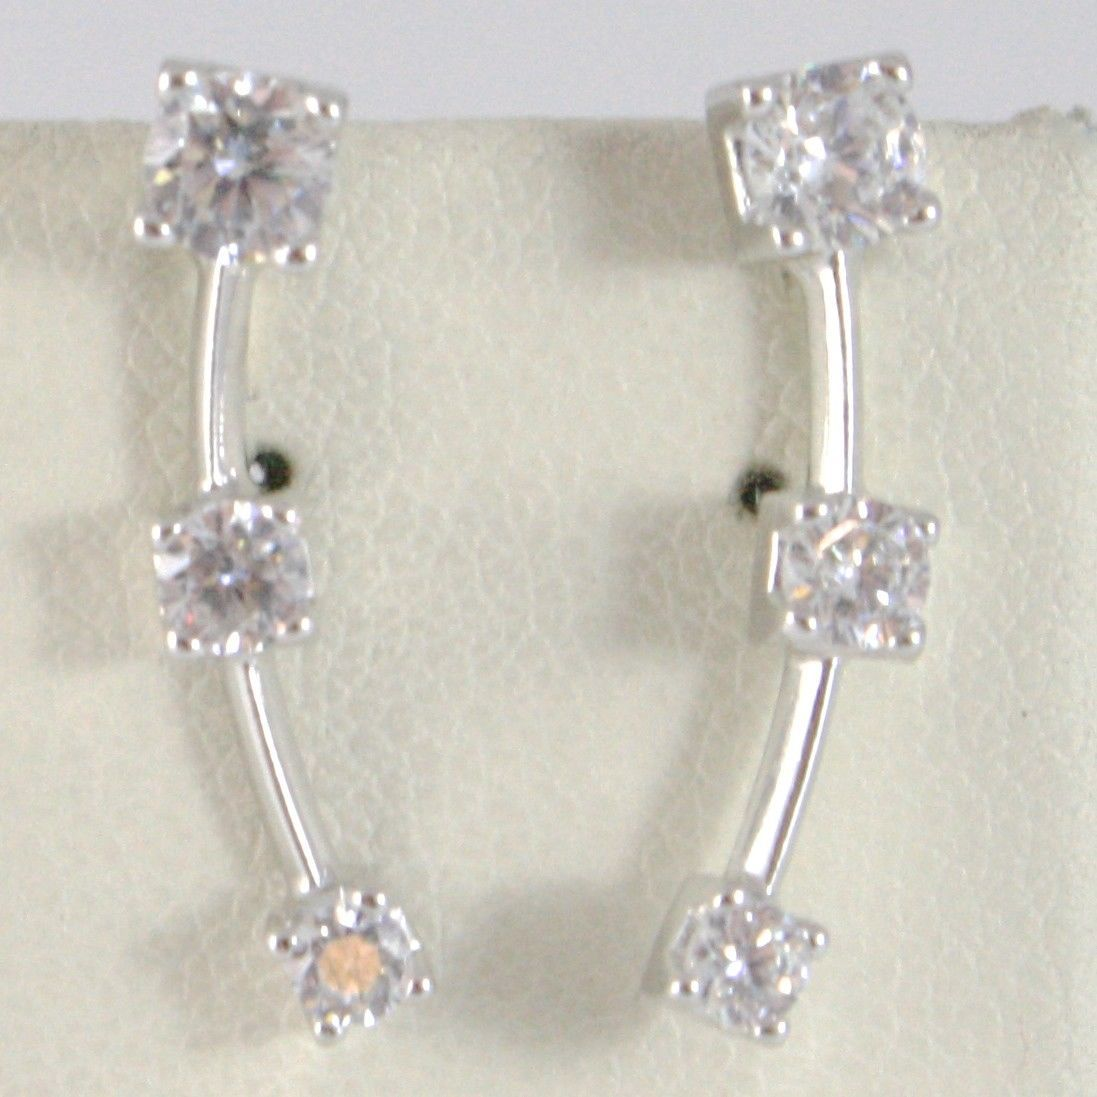 18K WHITE GOLD PENDANT TRILOGY EARRINGS OR EAR CLAMP ALONG LOBE SIDEWAYS CLIMBER